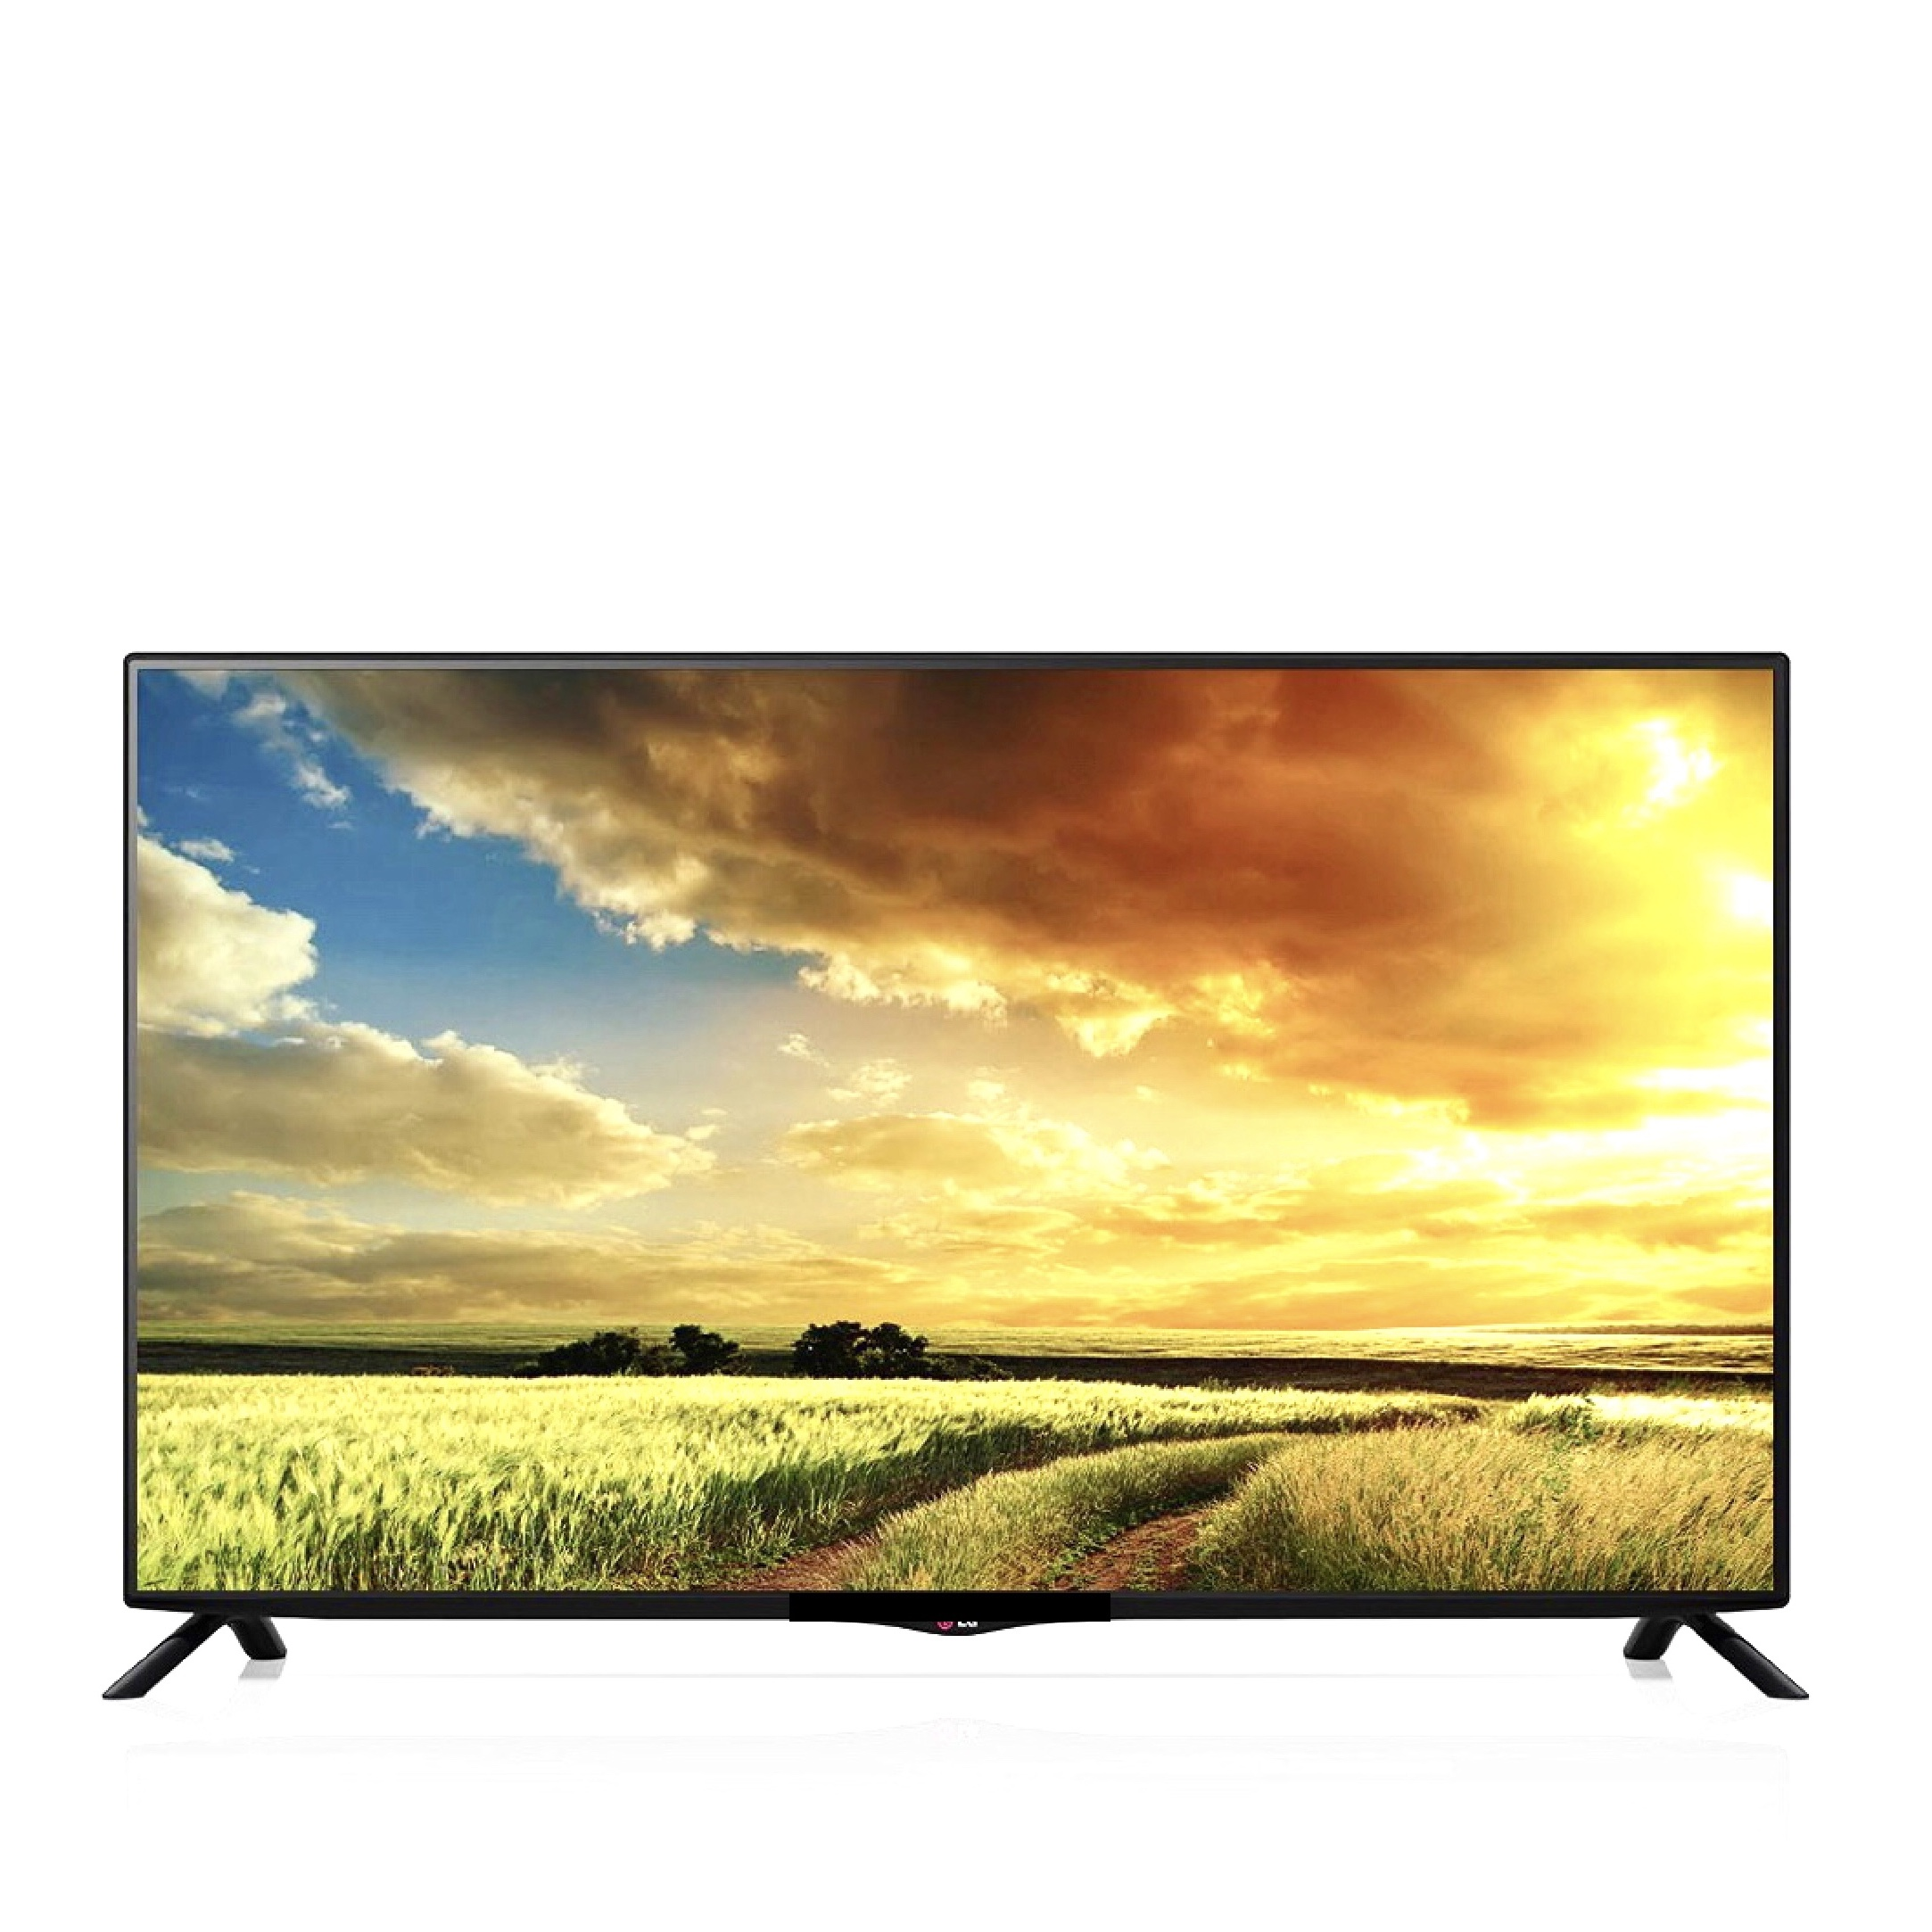 """OLIVE LED TV 32"""" with FHD,HDMI,USE, PC input"""